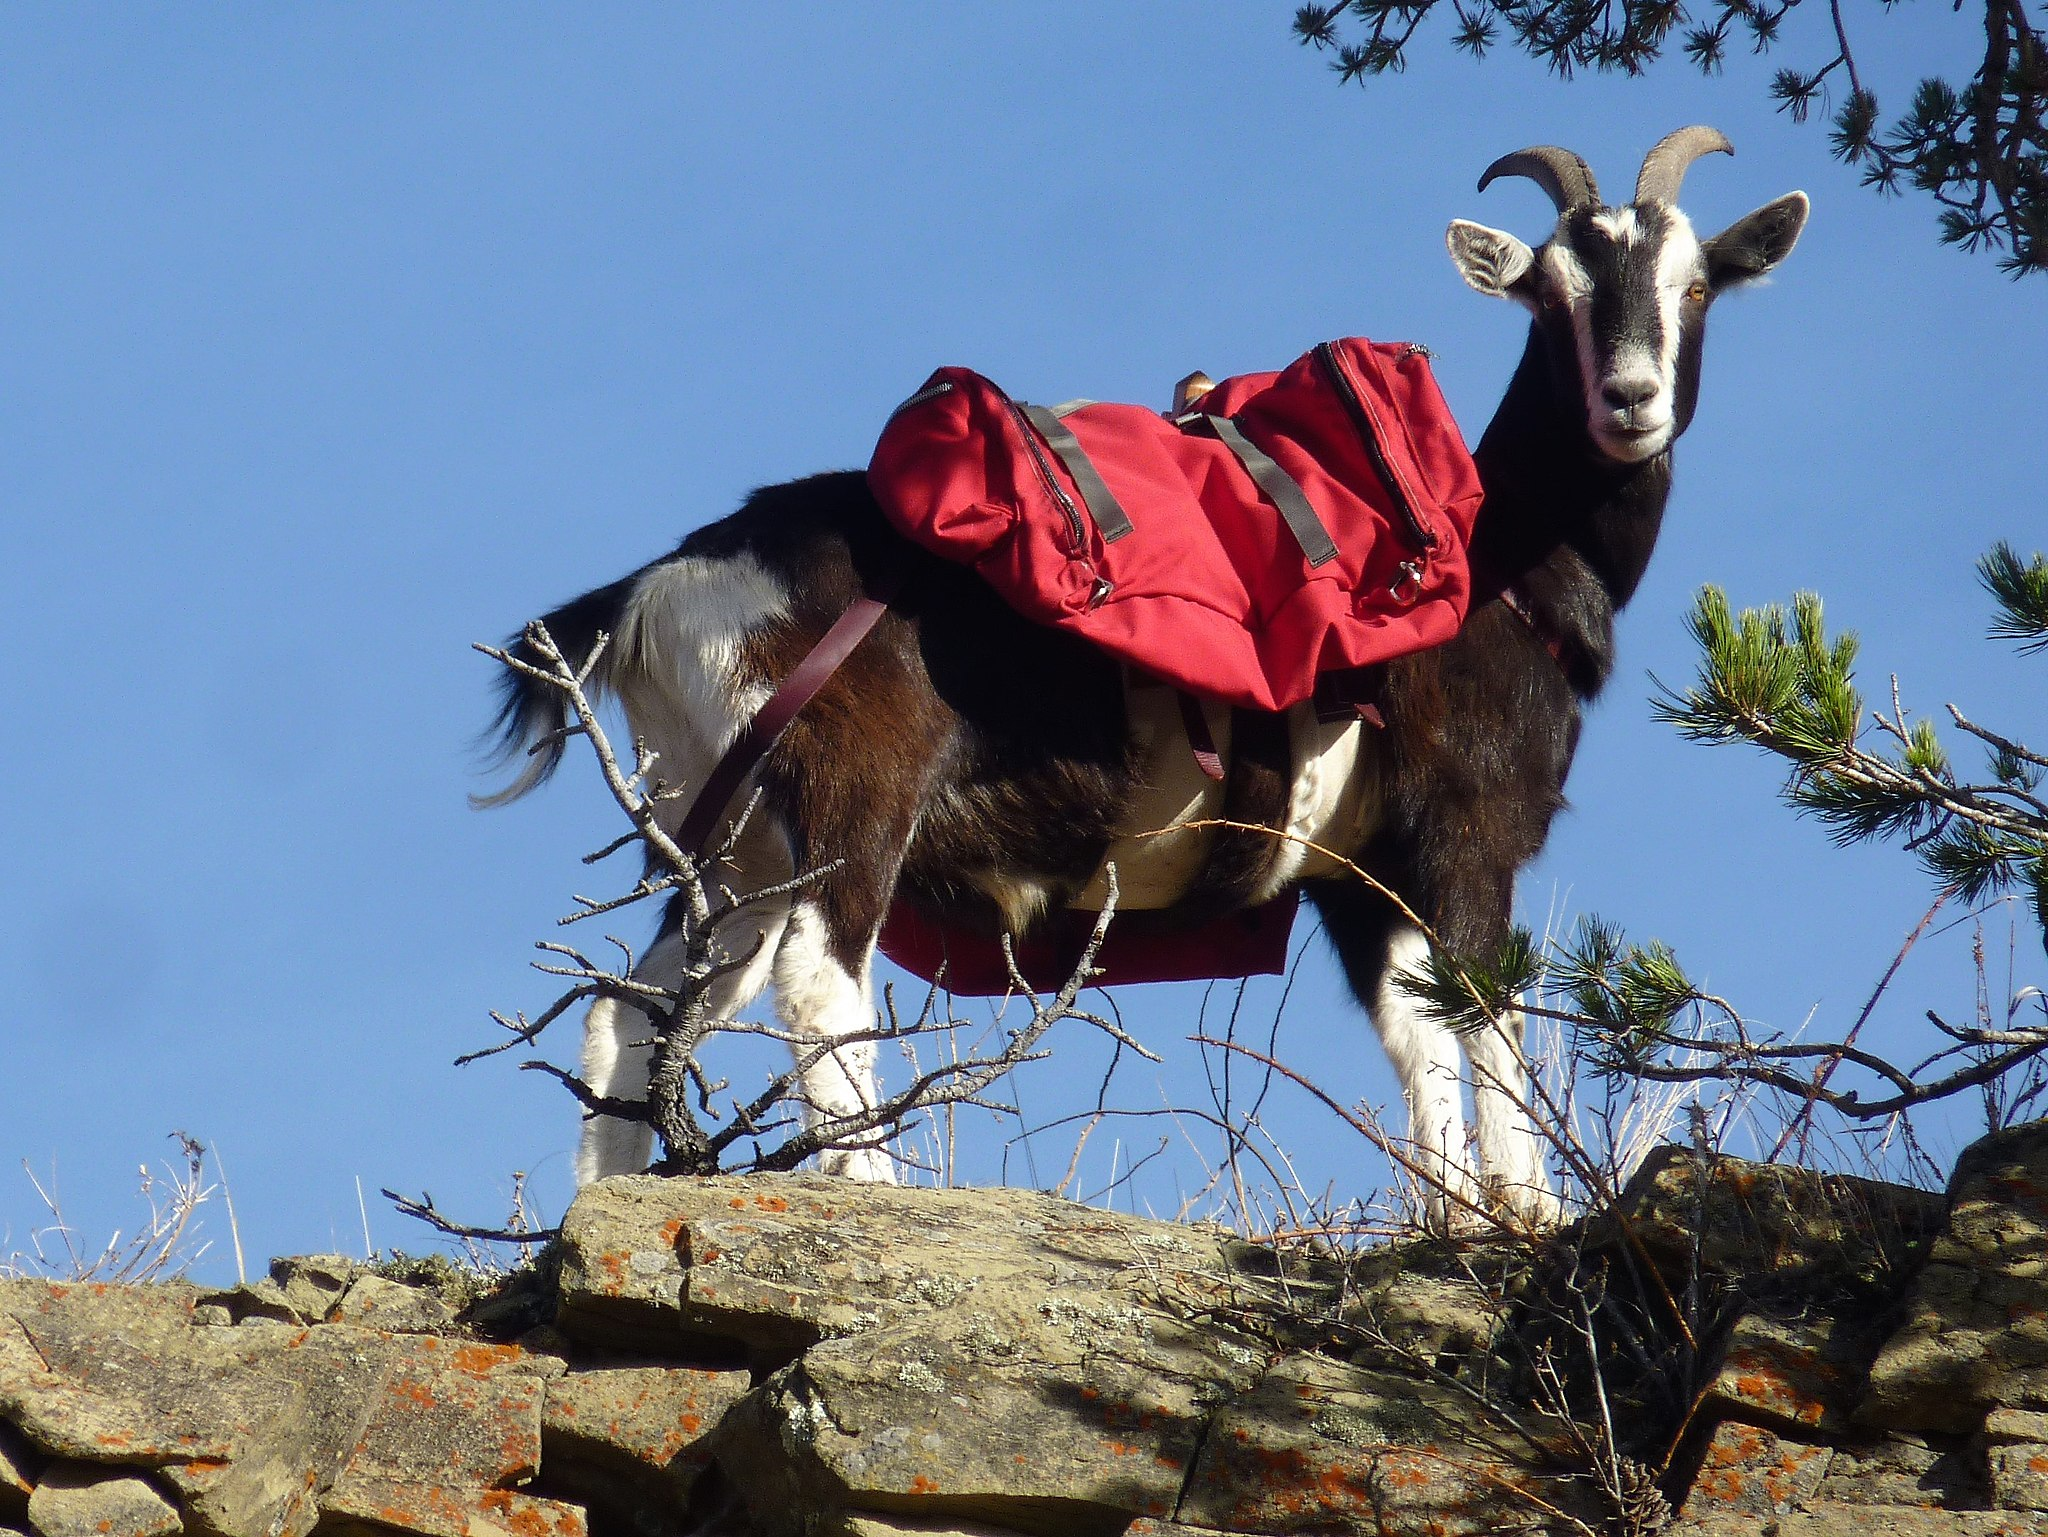 Hiking With Pack Goats is a Thing featured image